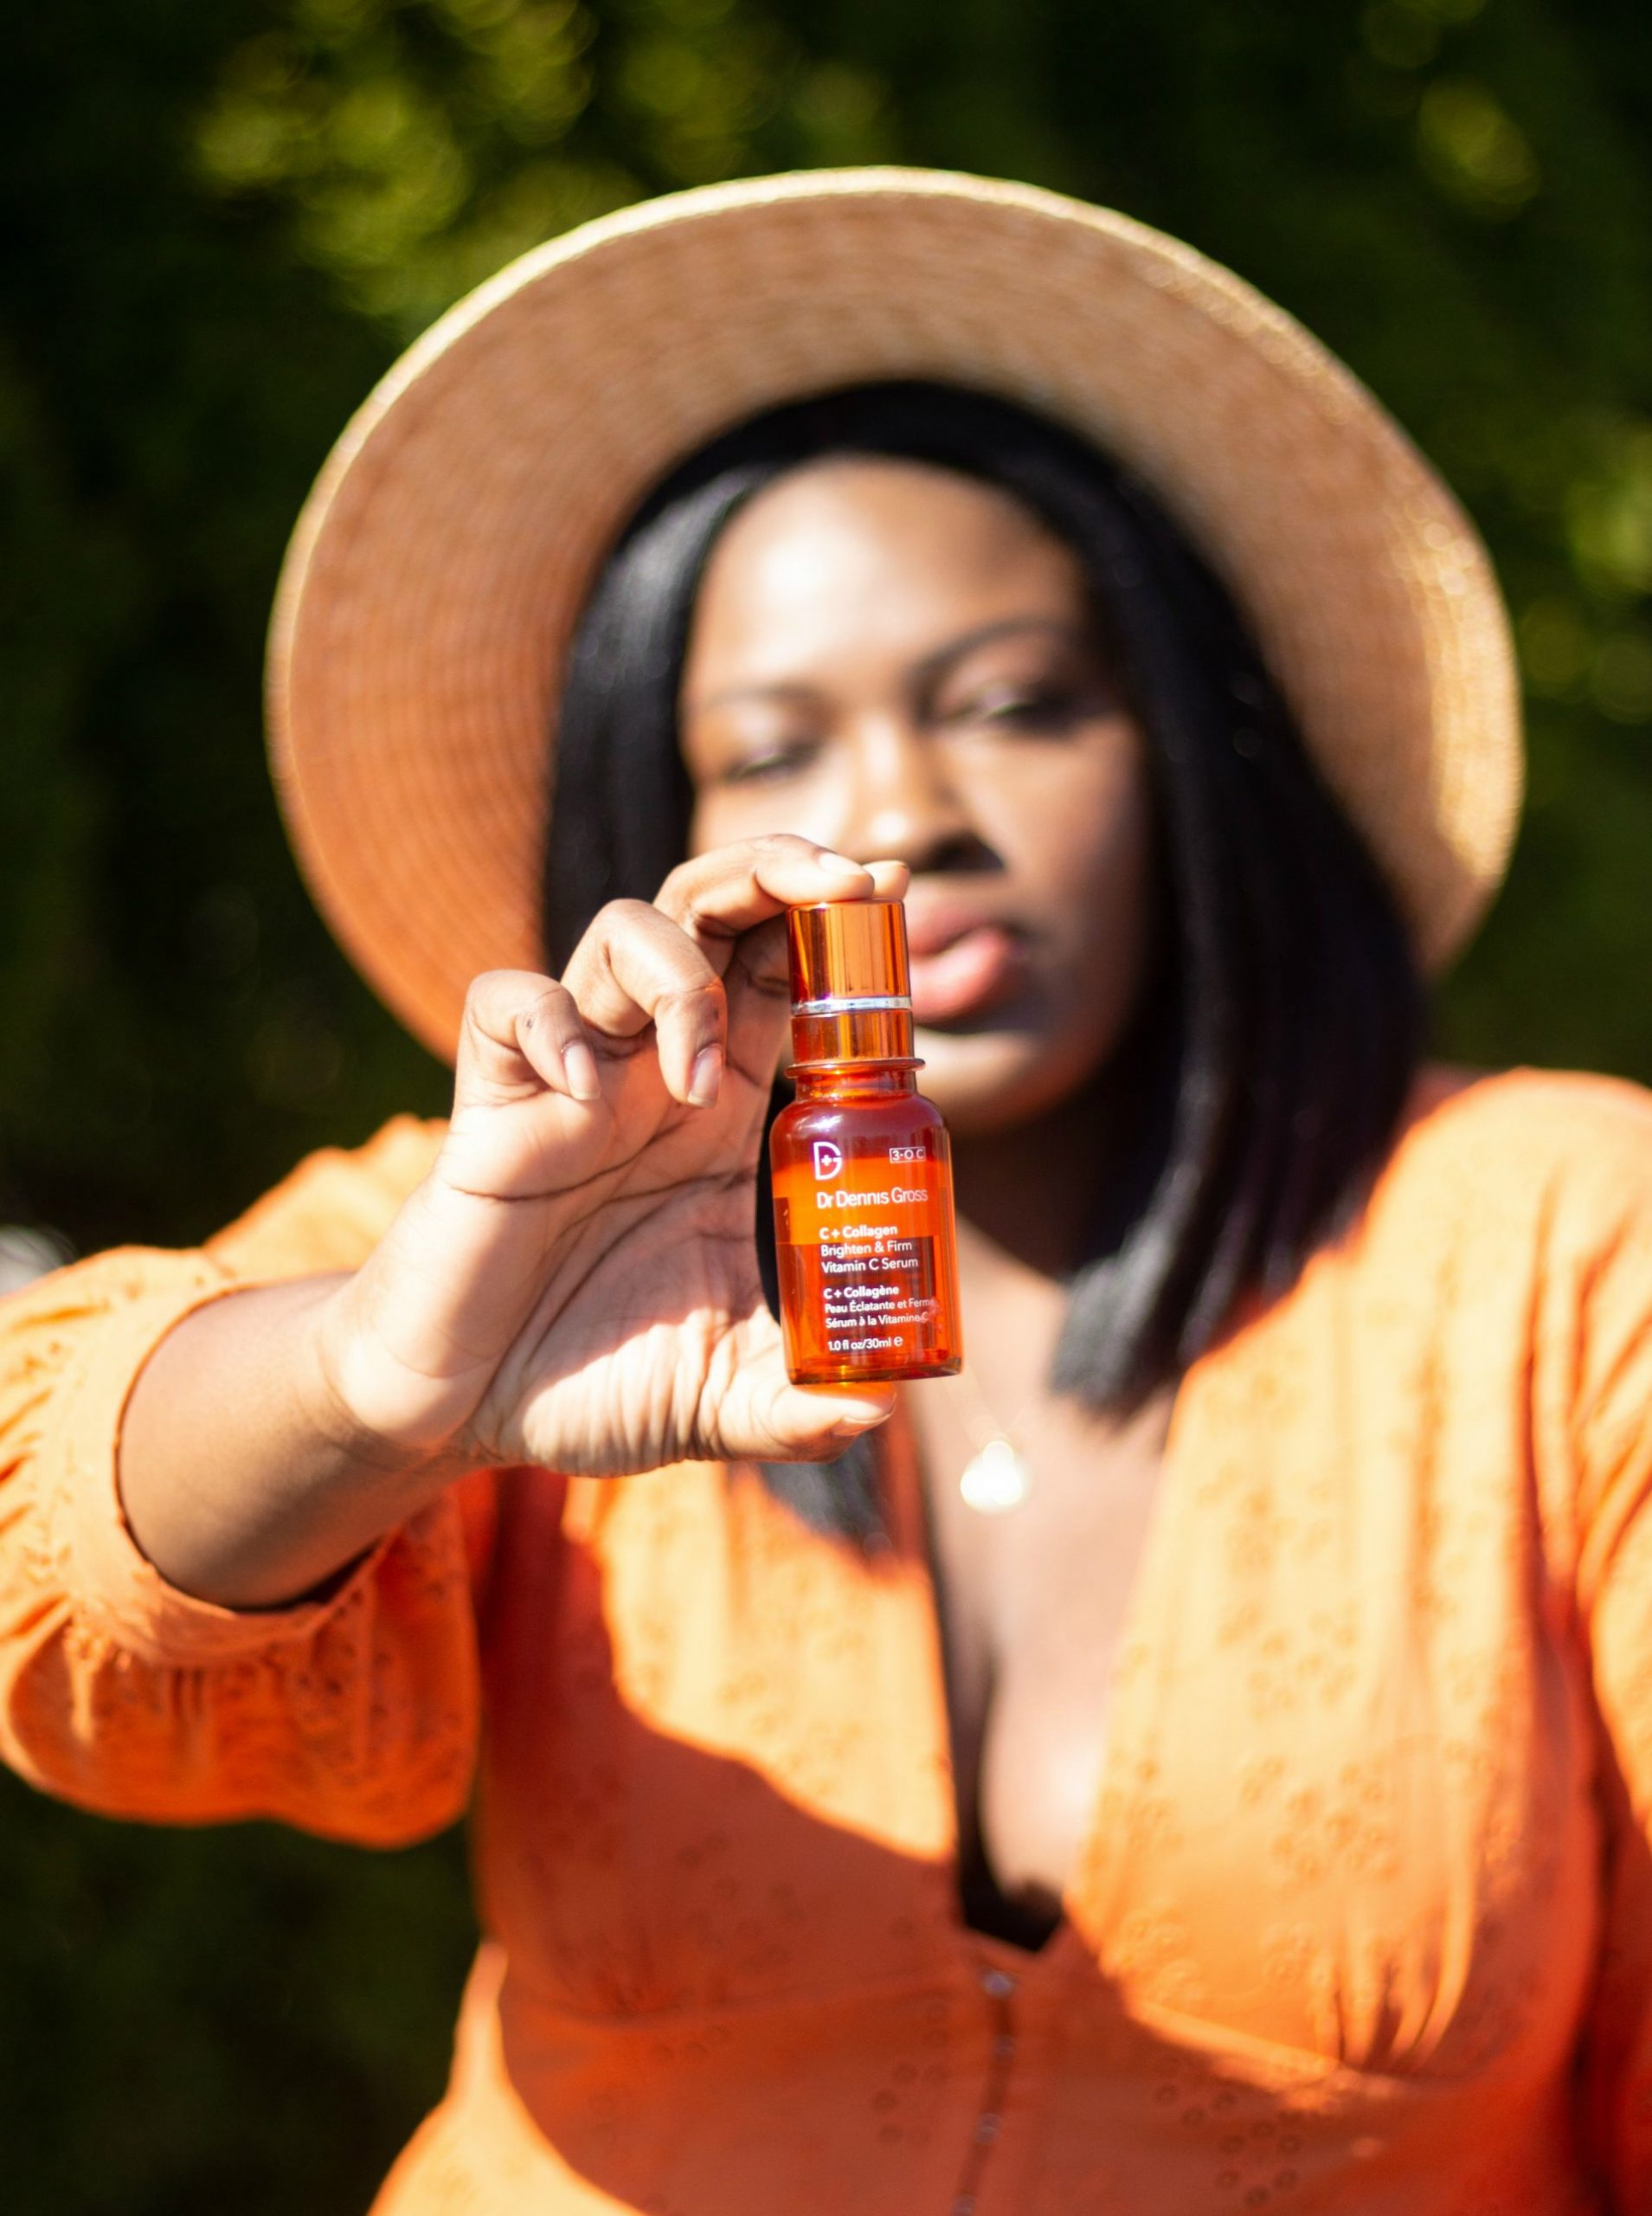 Best Vitamin C serums for women of color from supplechic a fashion and lifestyle blog based in baltimore